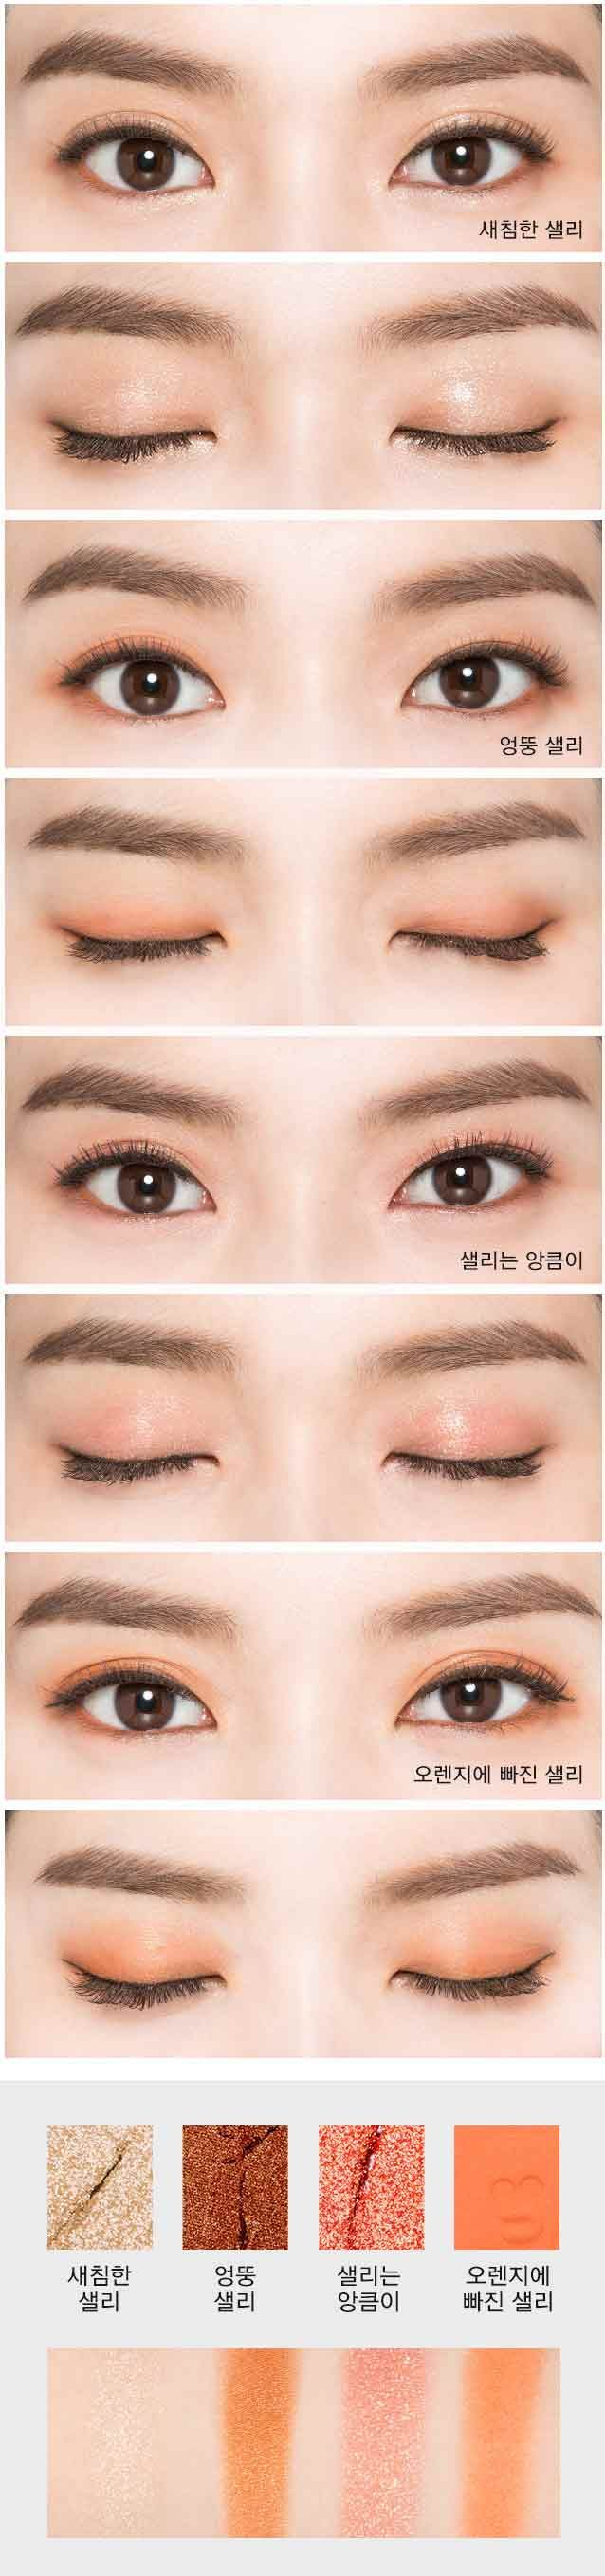 MISSHA Eye Color Studio Mini 7.2g [Line Friends Limited Edition] #3 Sally Orange available at Beauty Box Korea Más